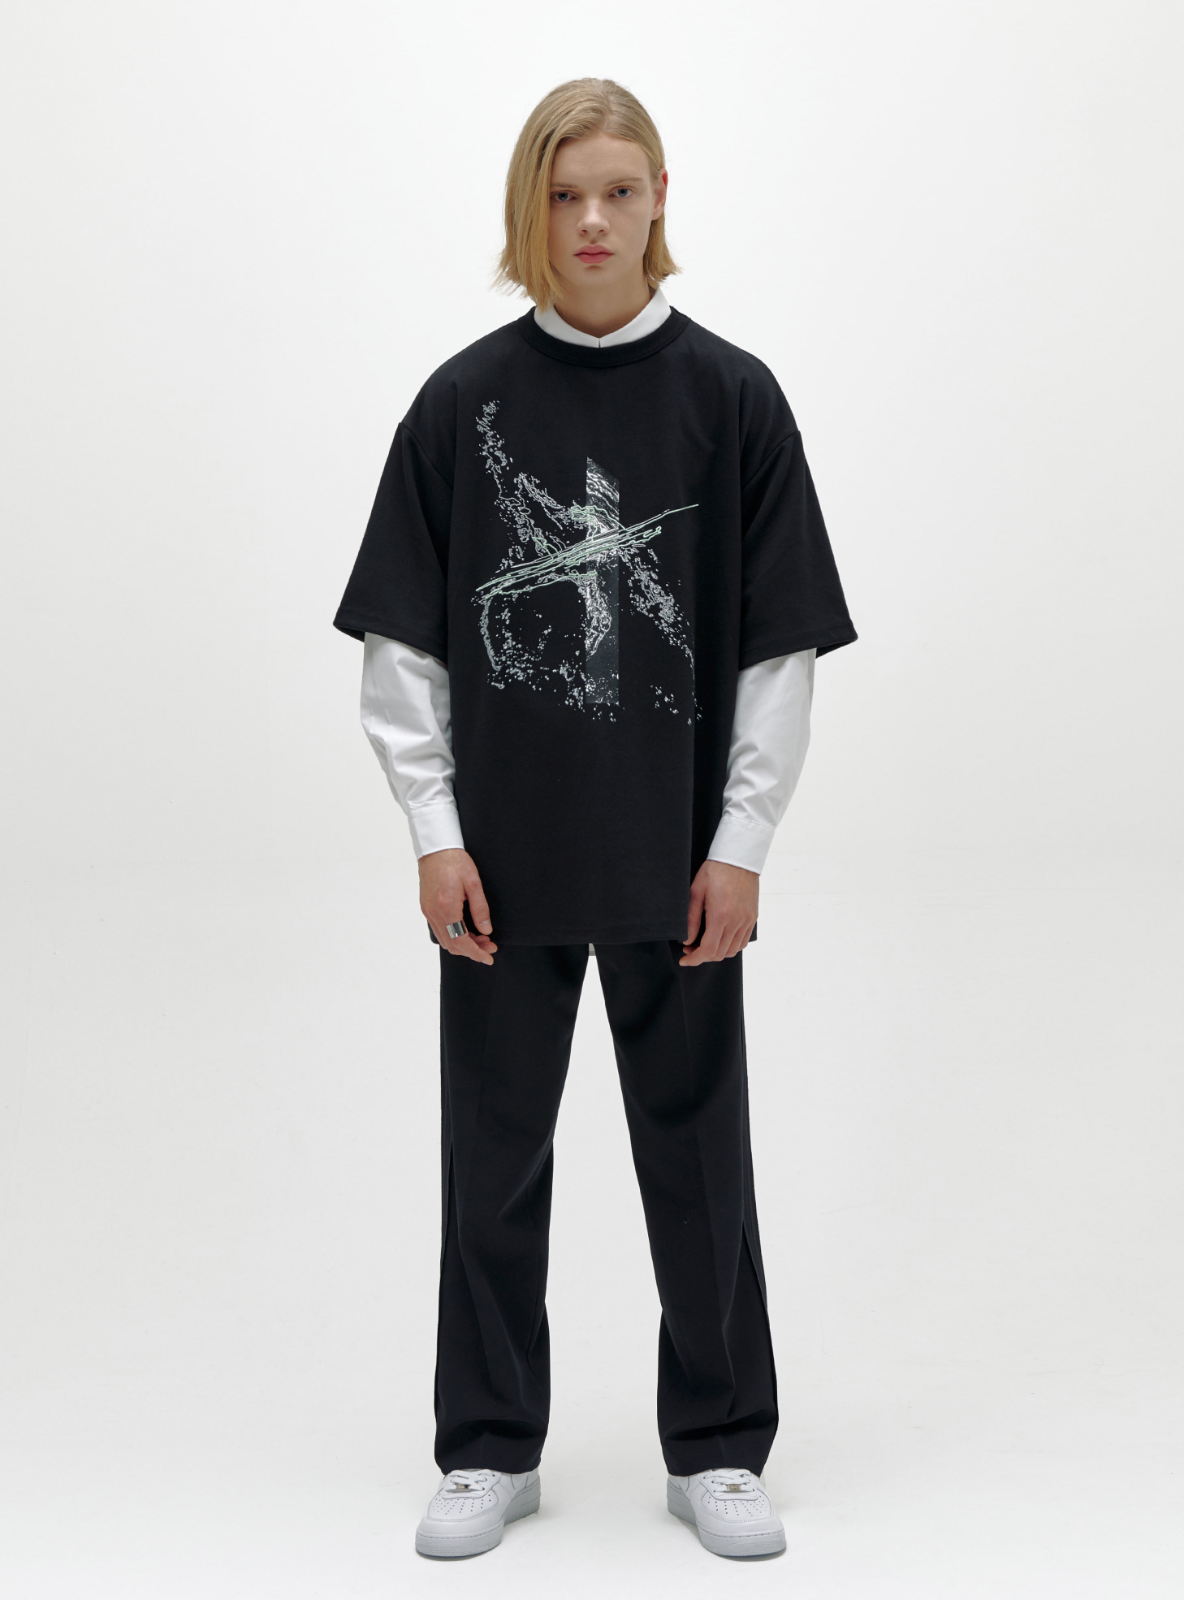 SPLASH AVANTGARDE T-SHIRT BLACK